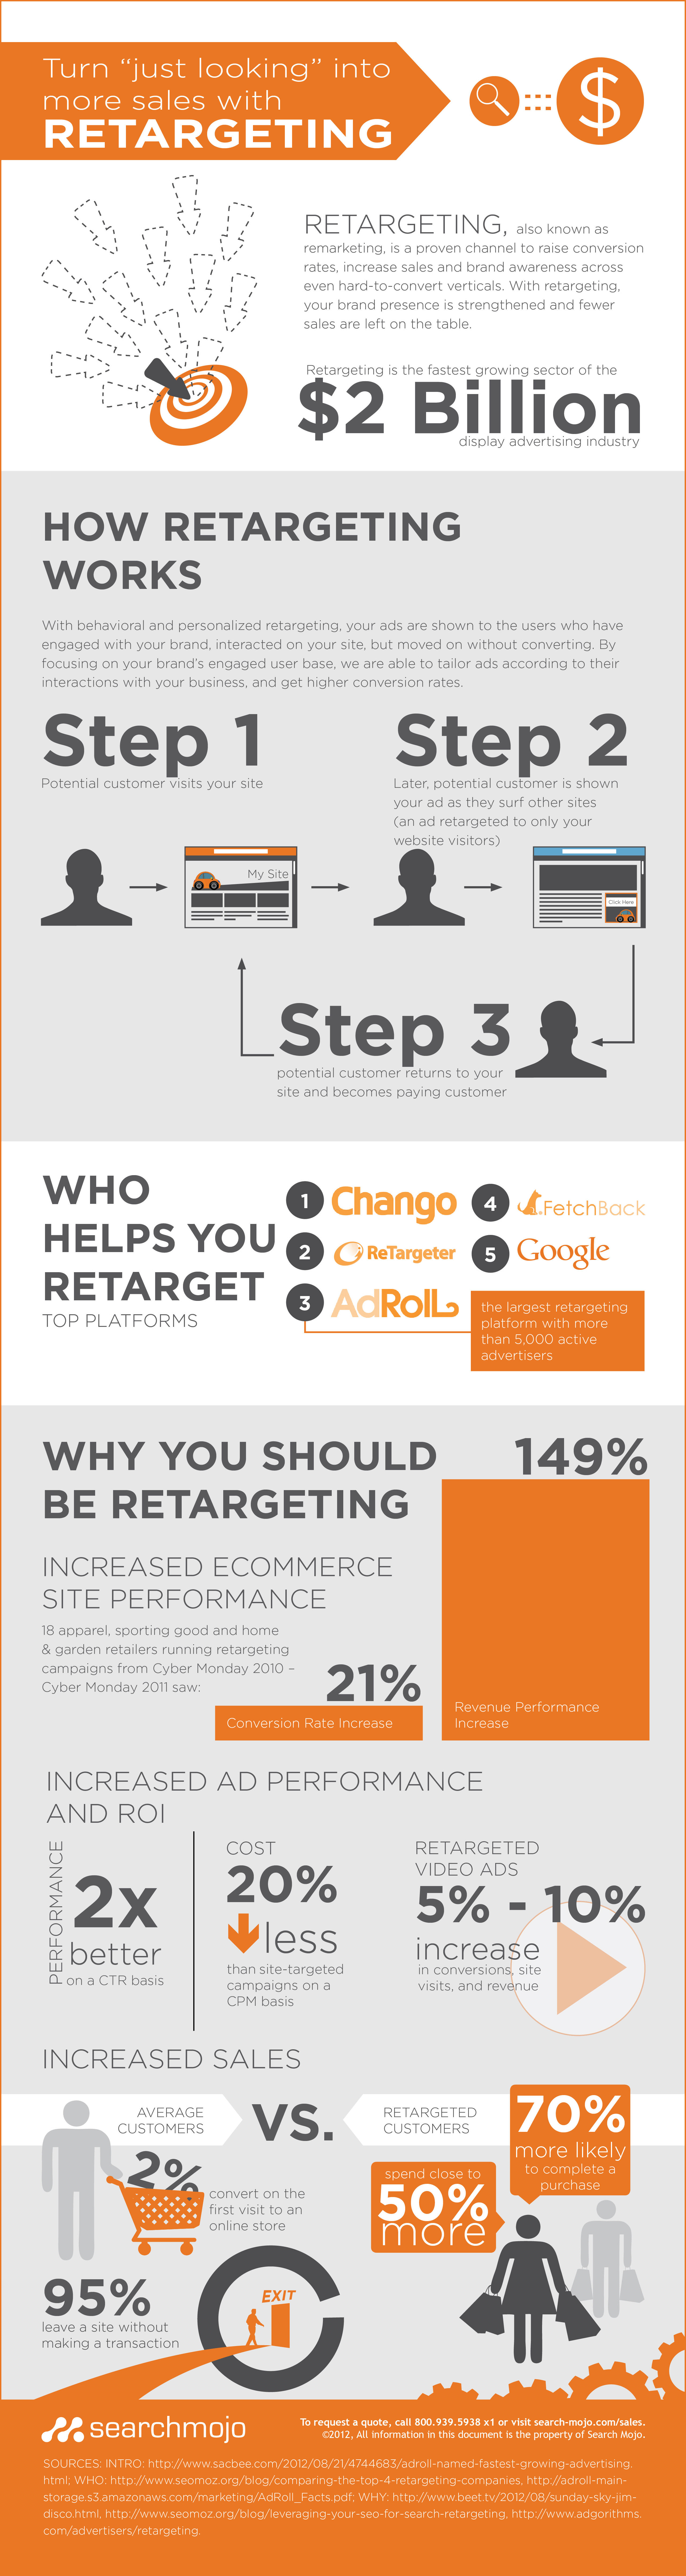 Turn Just Looking Into More Sales with Retargeting